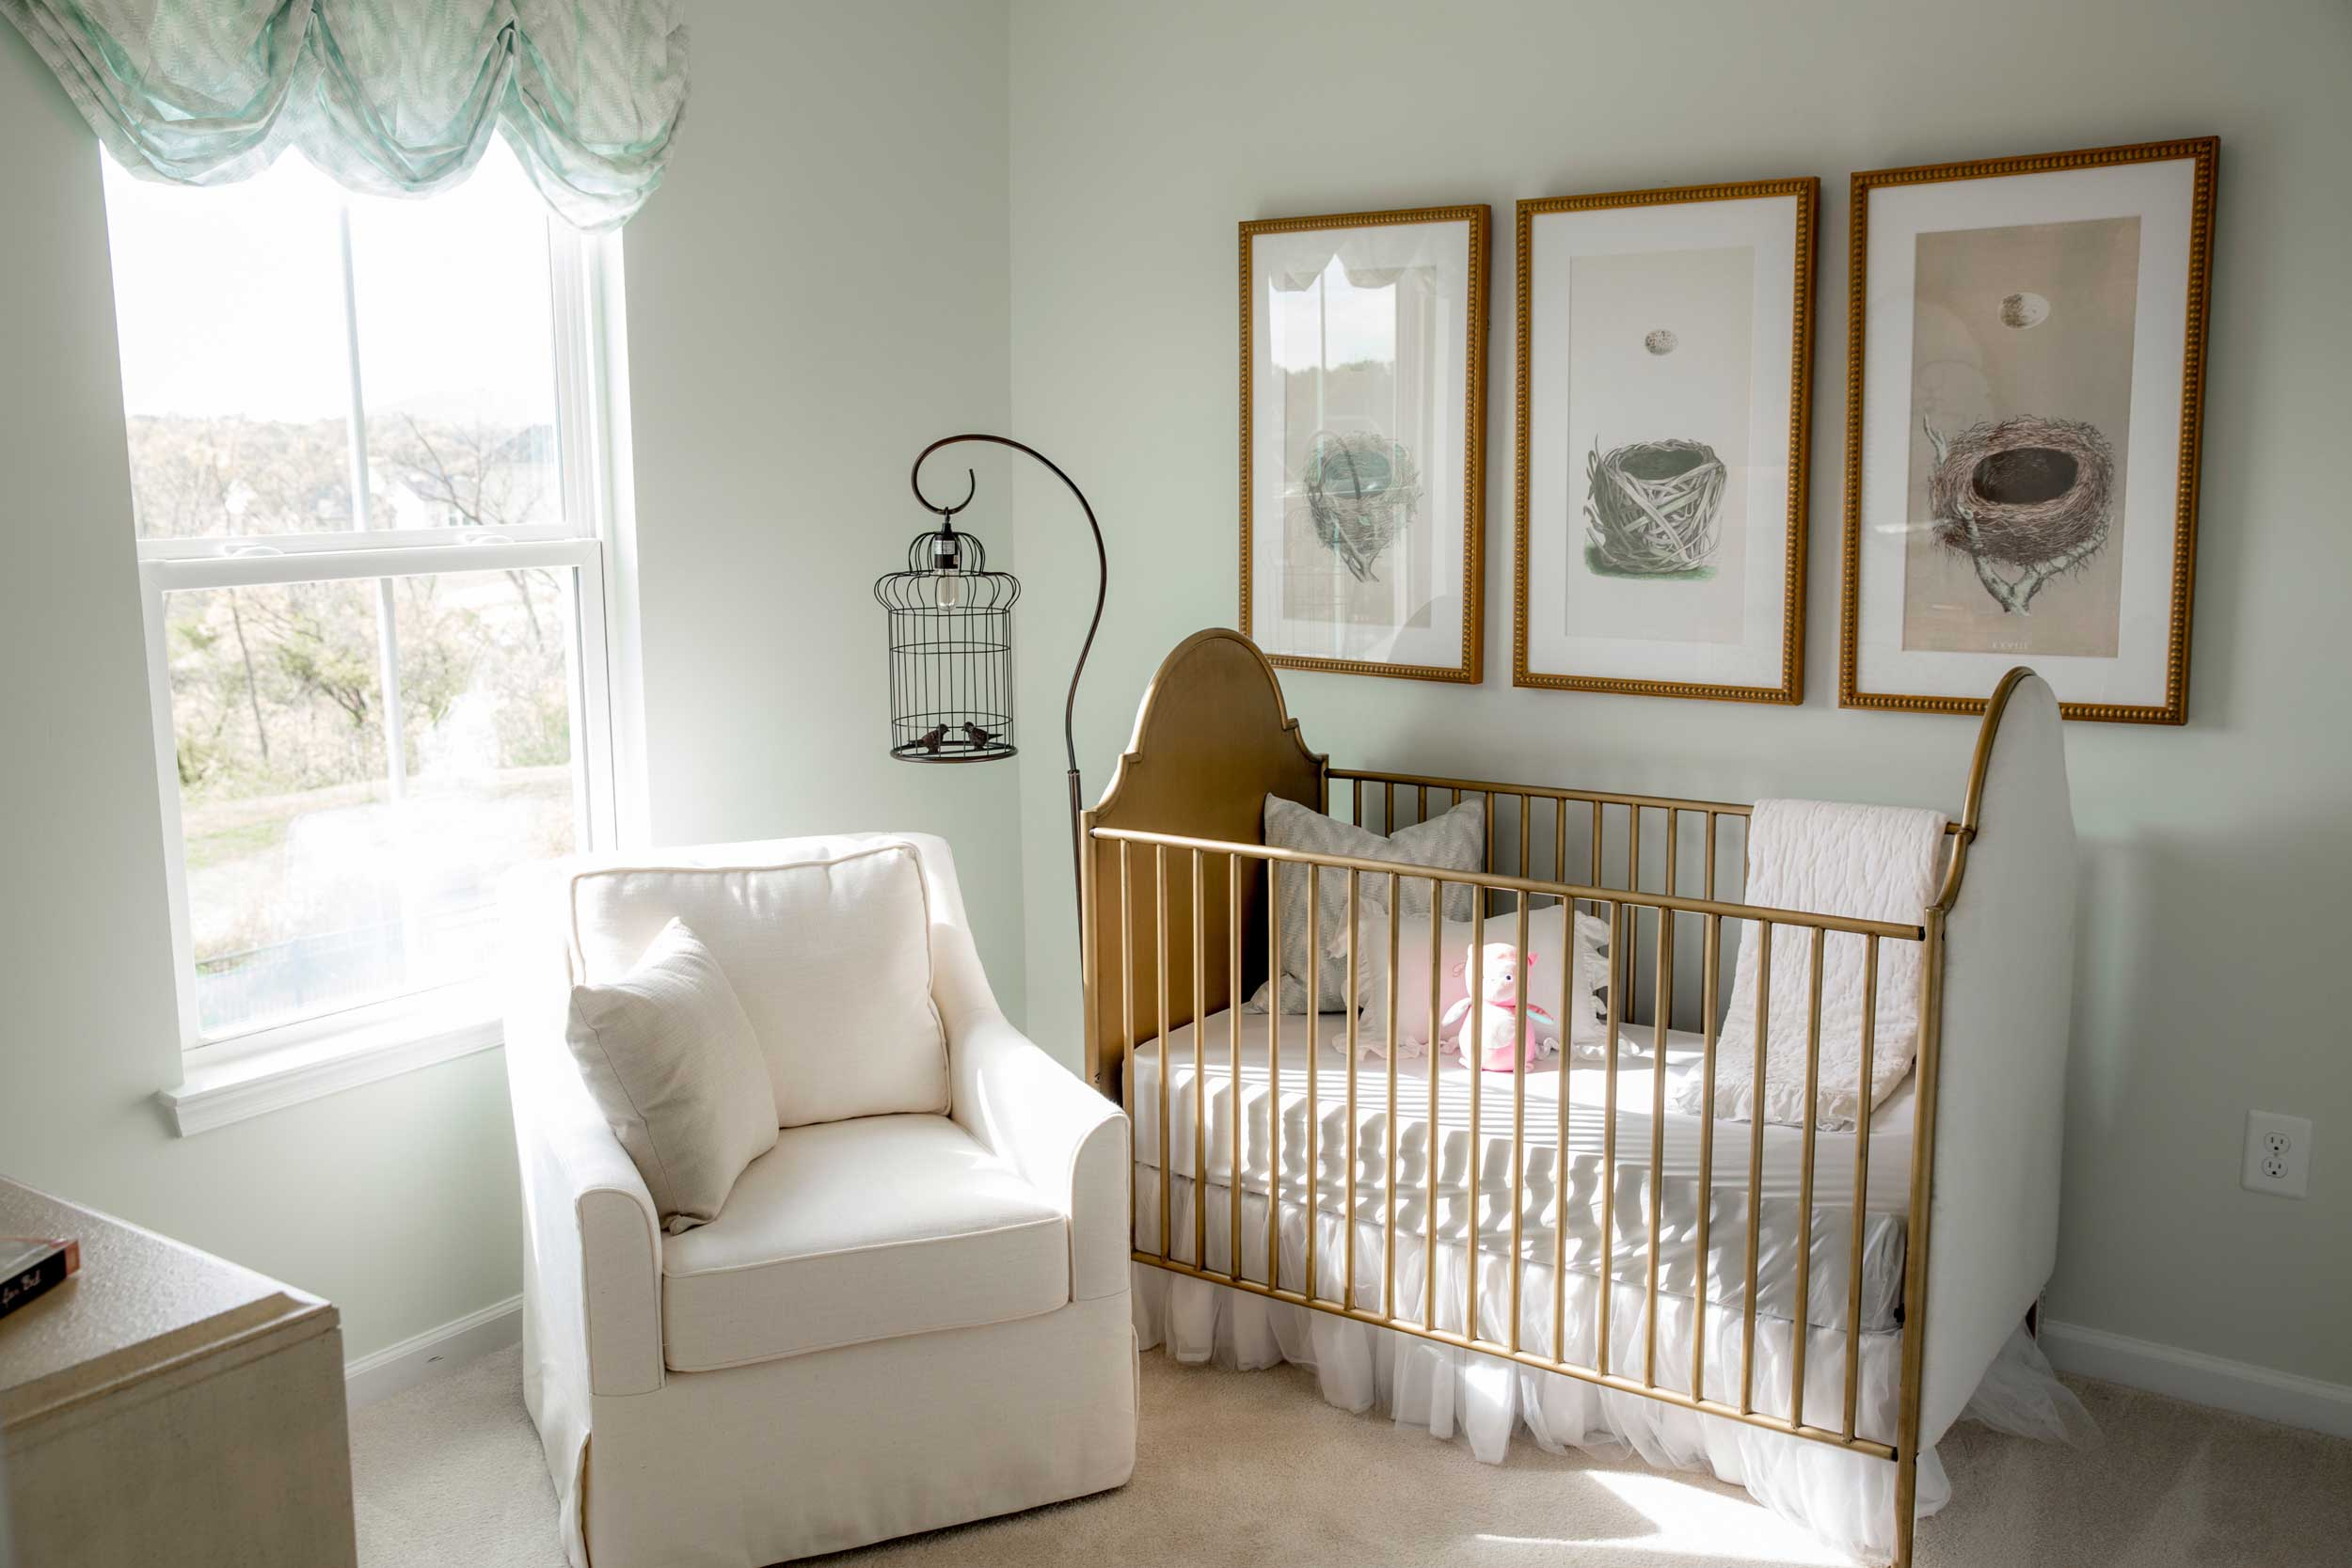 Brunswick_Crossing_Mendelssohn_Ryan_Homes_Nursery.jpg